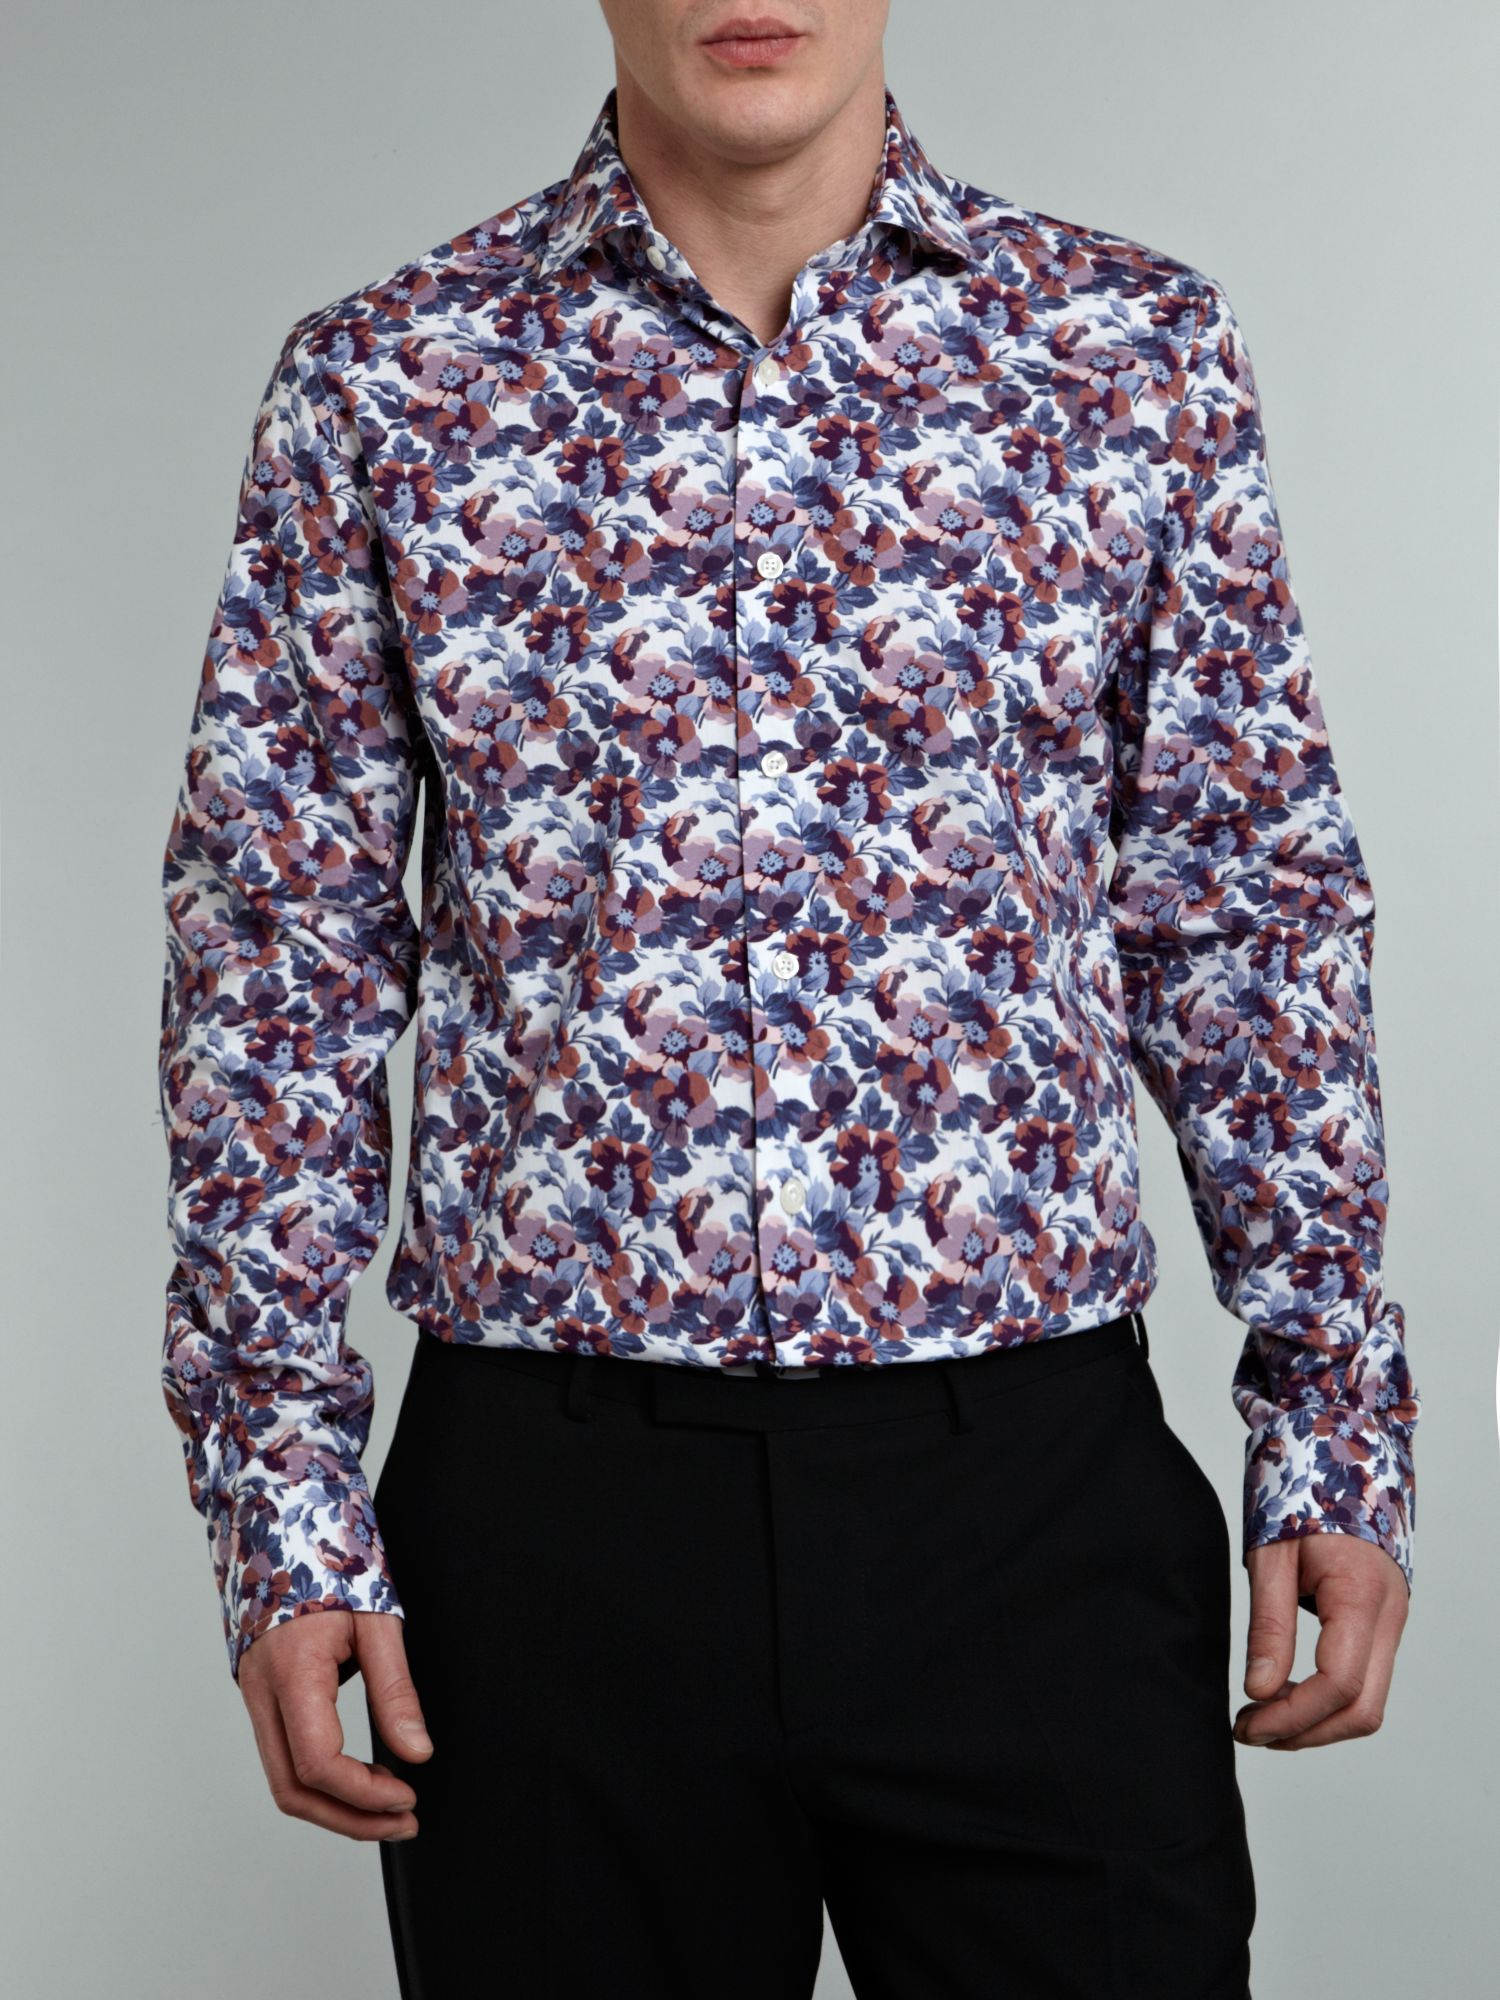 Long sleeve blooms printshirt